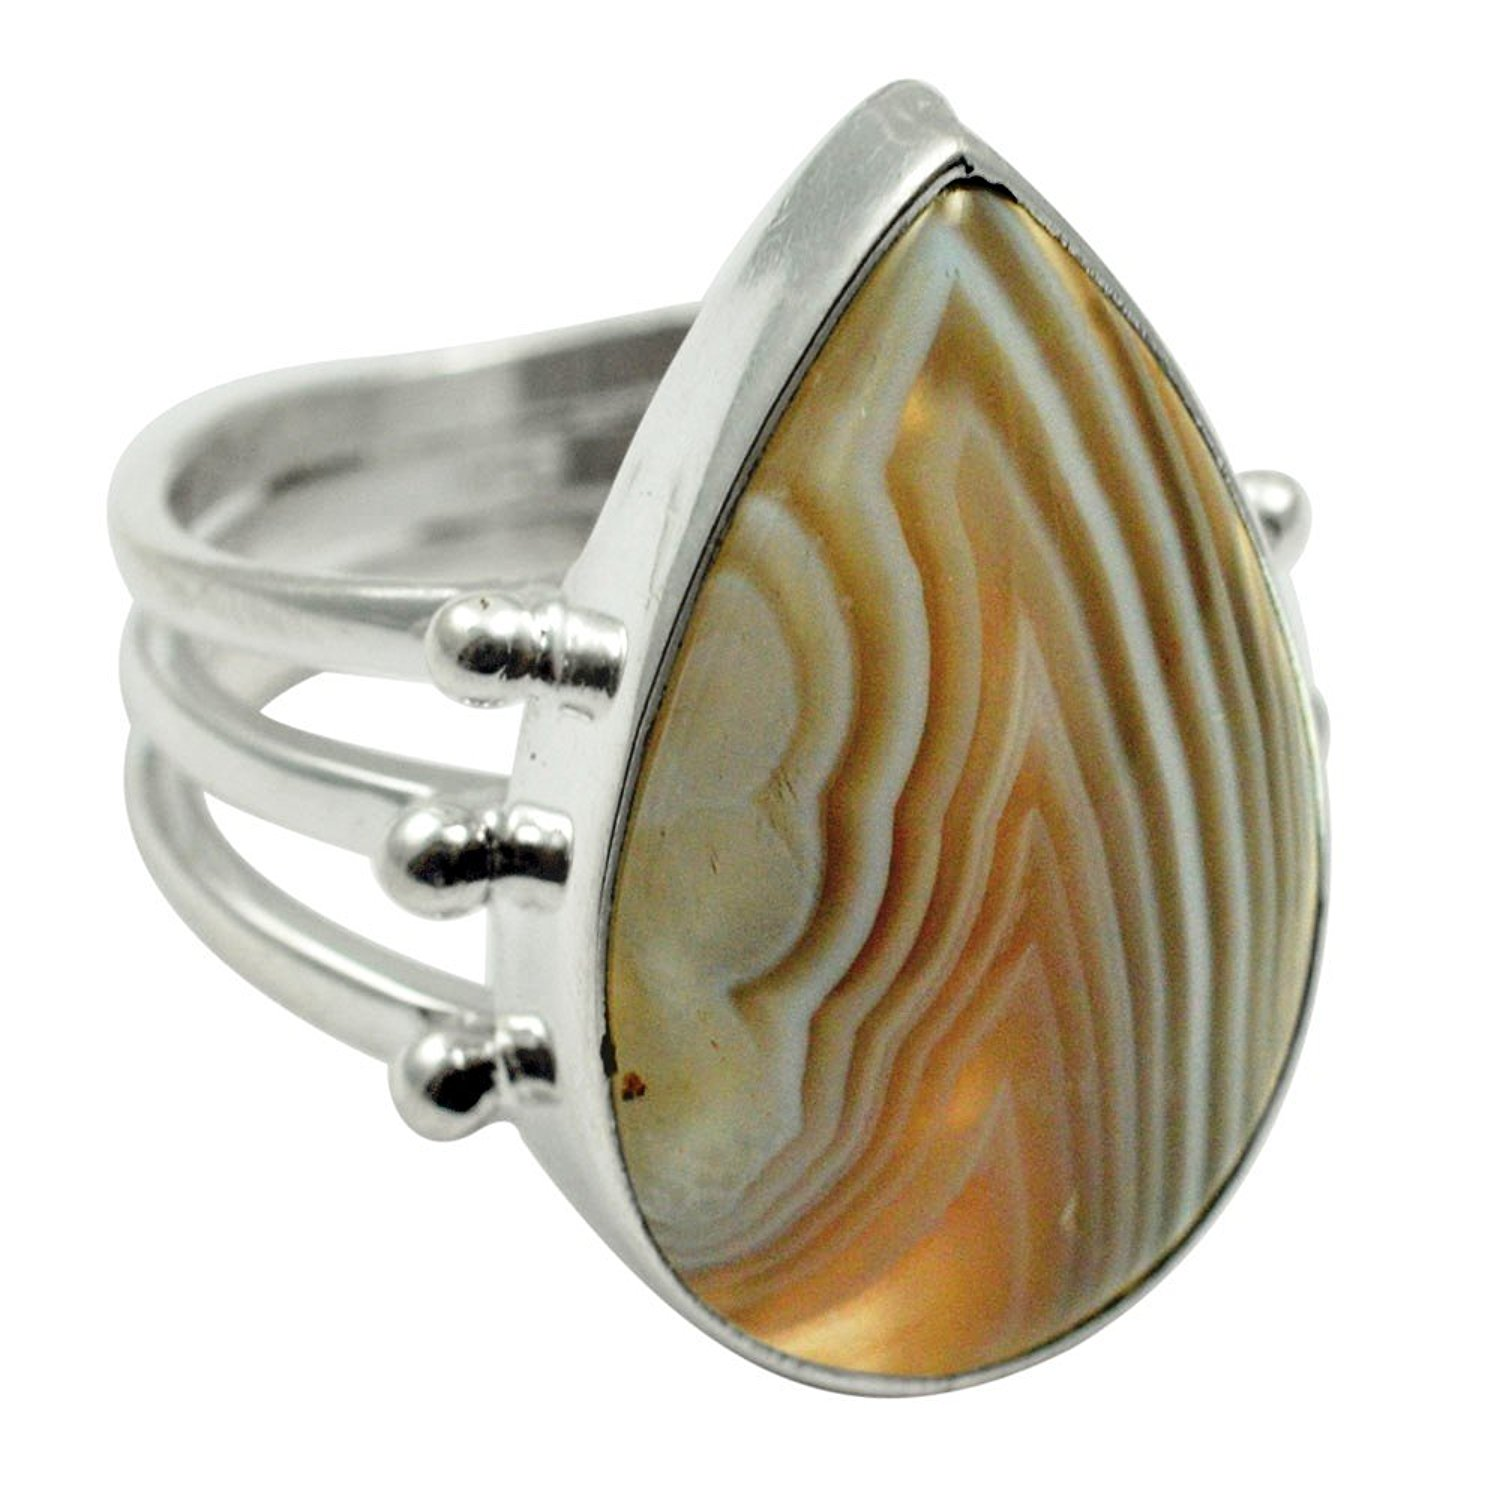 Lovegem Genuine Botswana Agate RING 925 Sterling Silver,Size: 7.75 , AR2902 tumbled pink botswana agate mostly 5 8 1 1lb bag